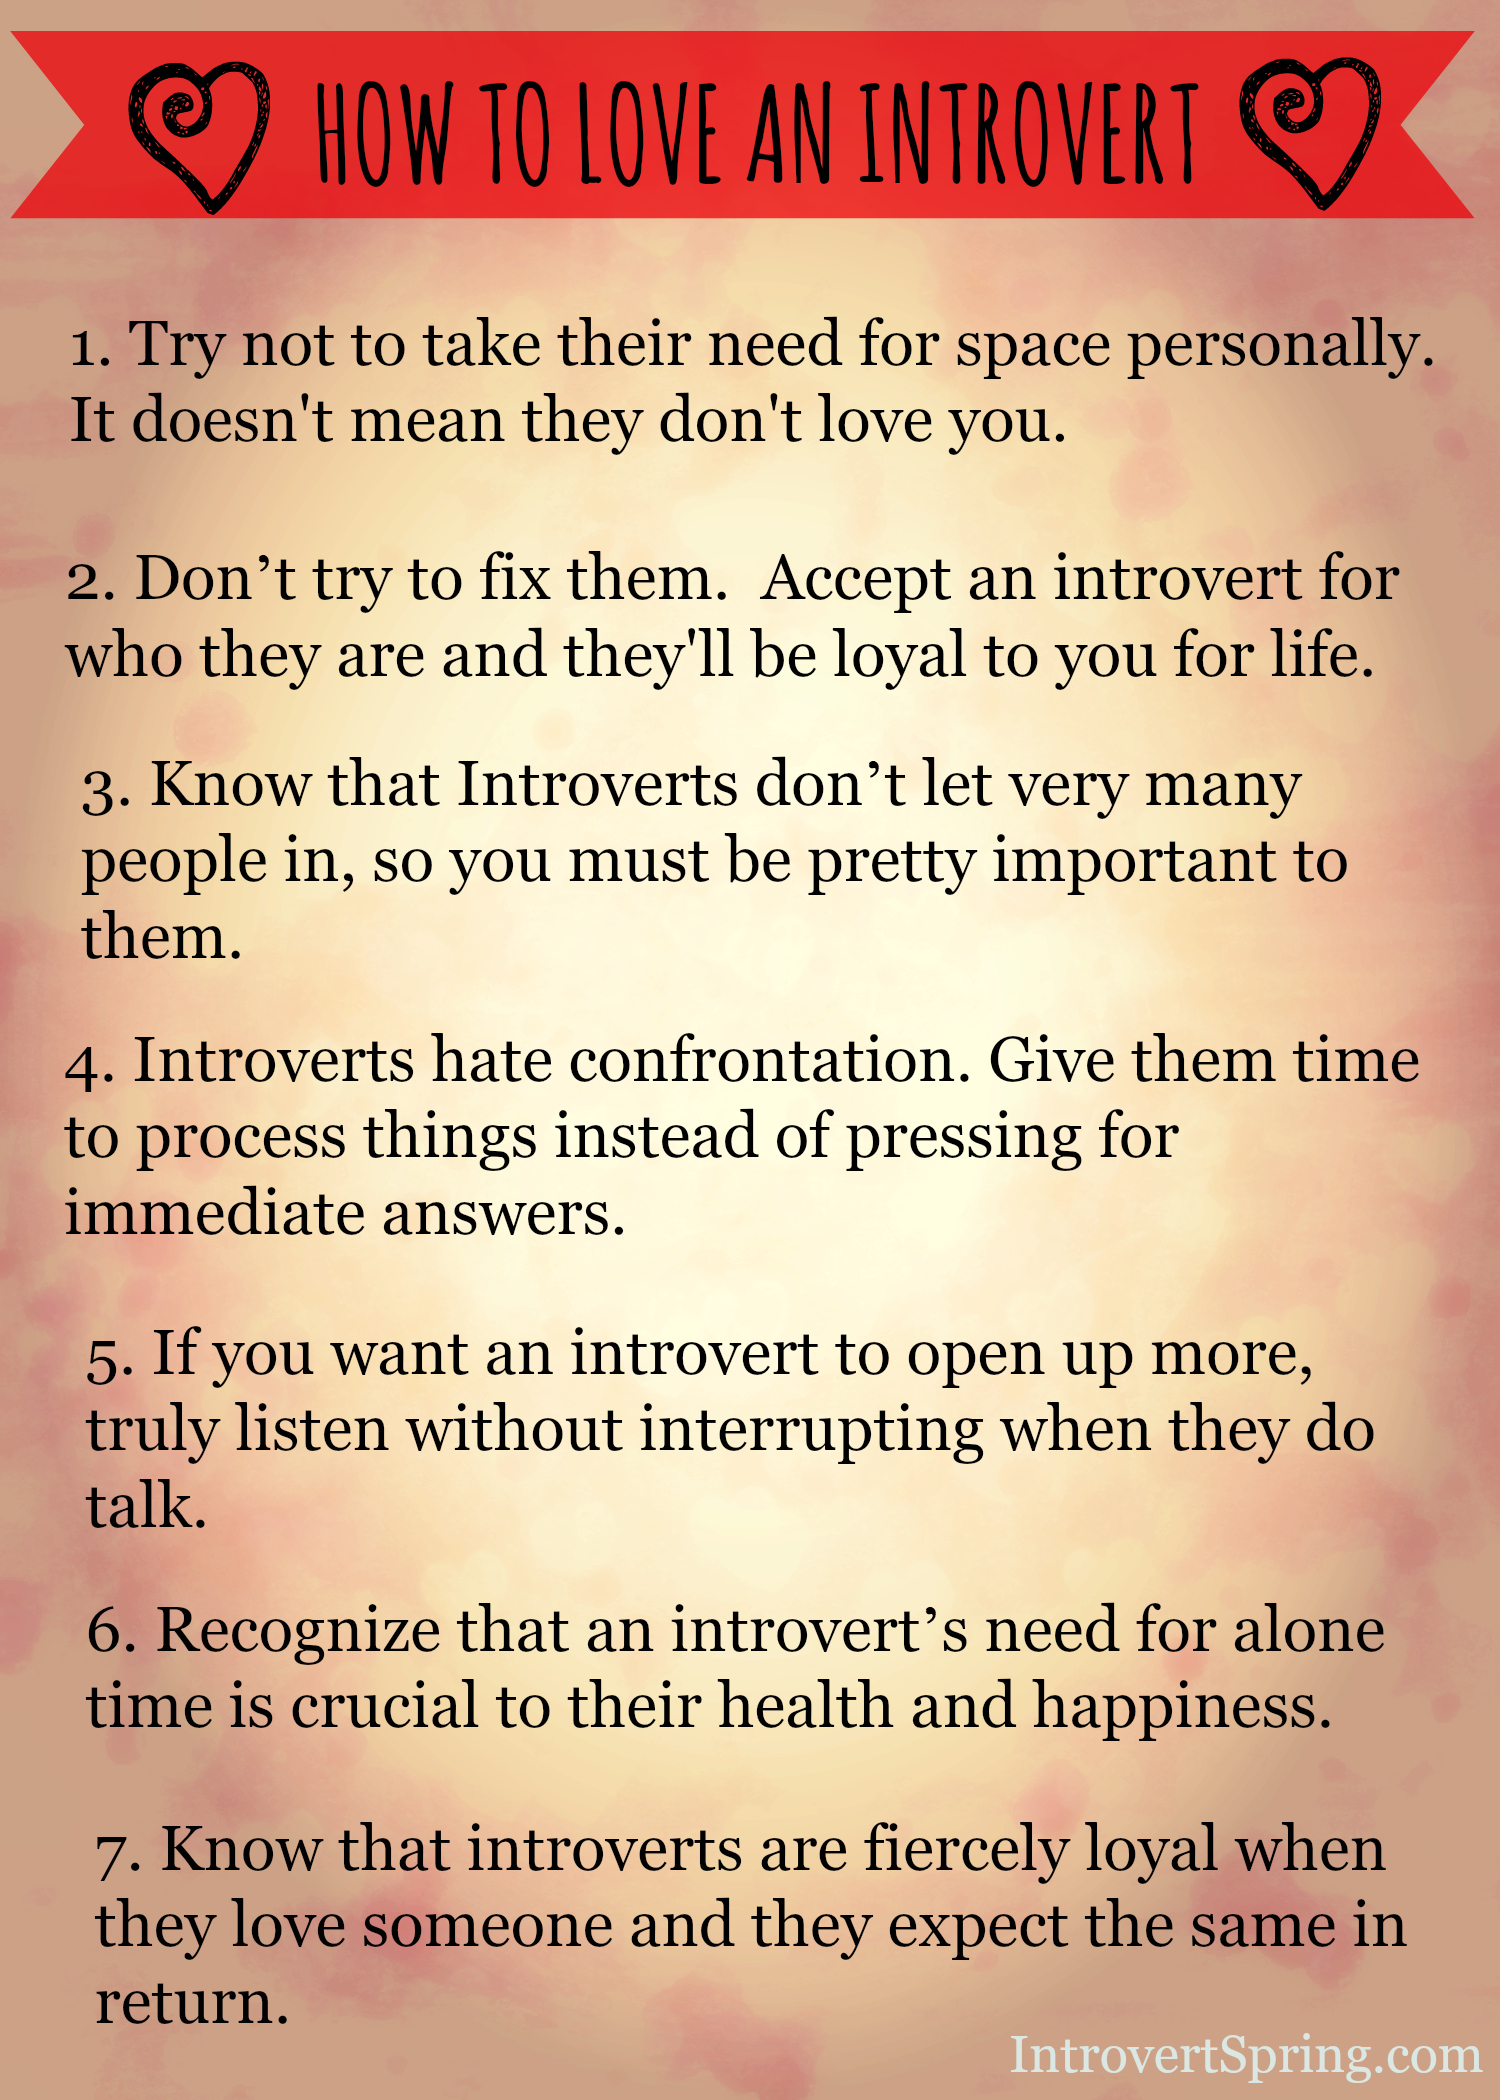 7 reasons love introvert